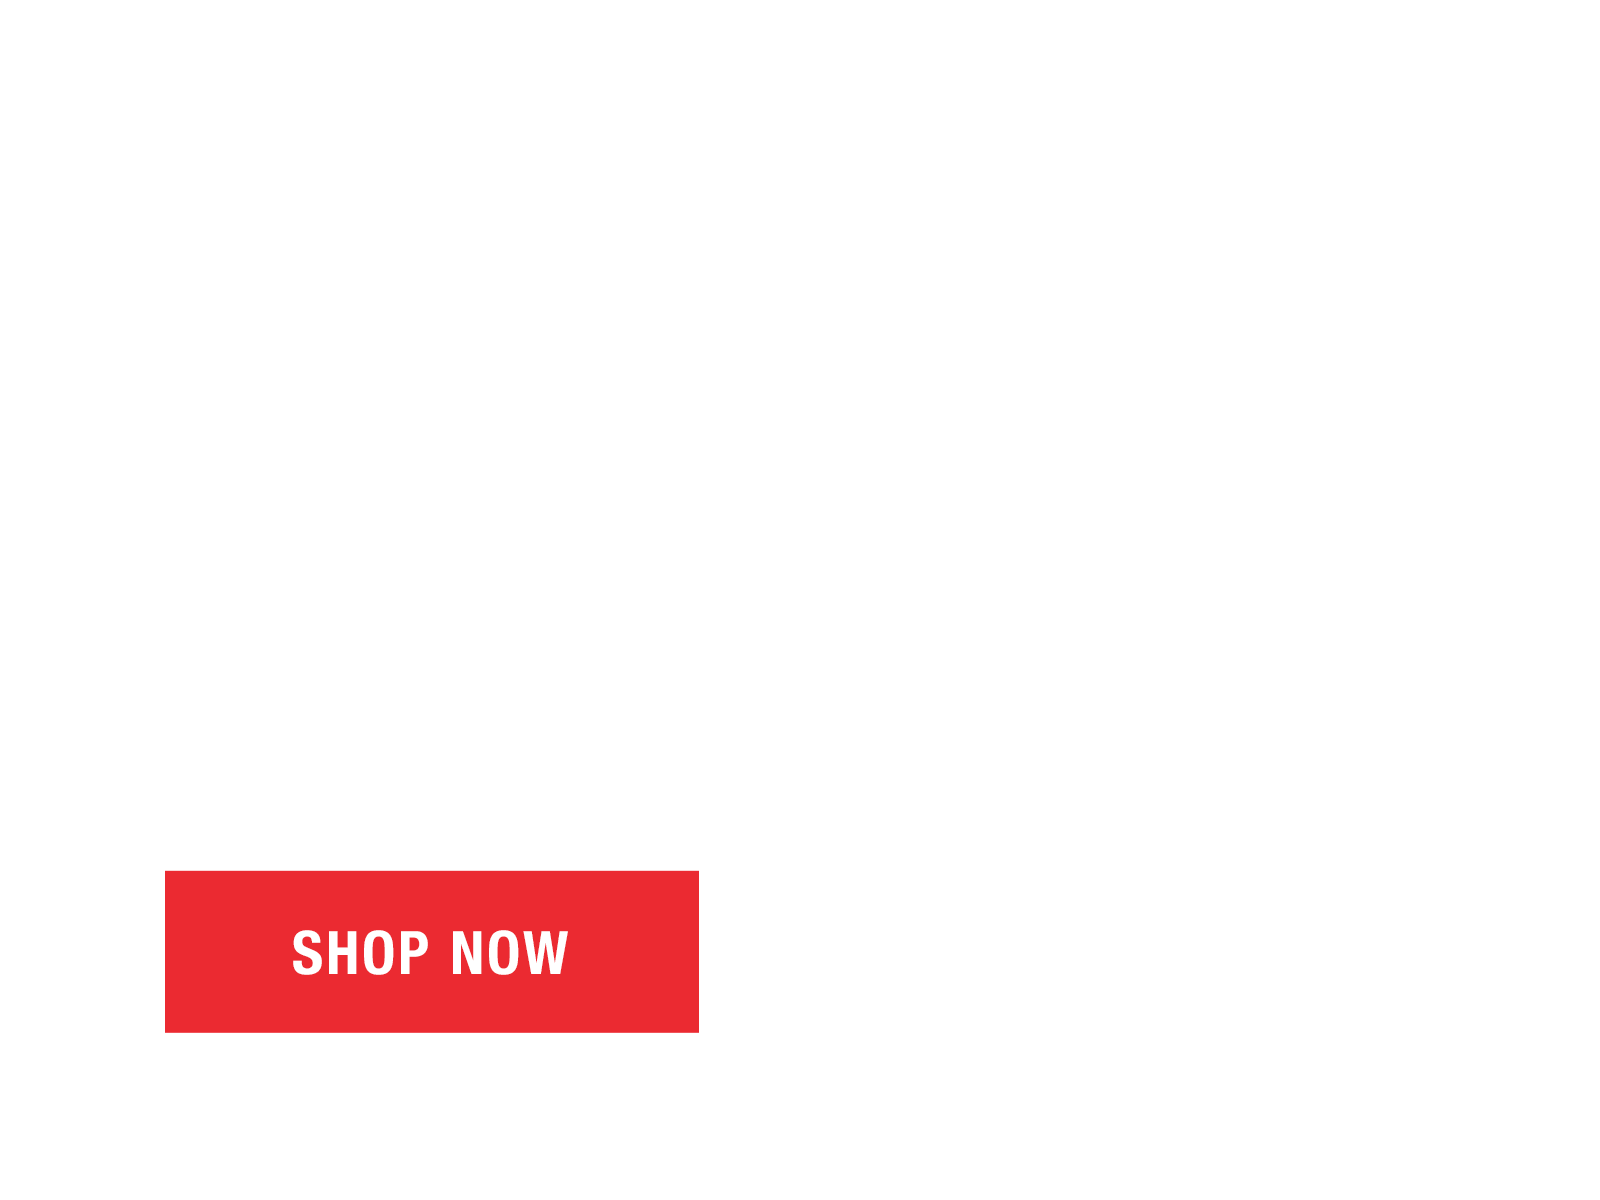 Shop resistance bands and tubes built to last